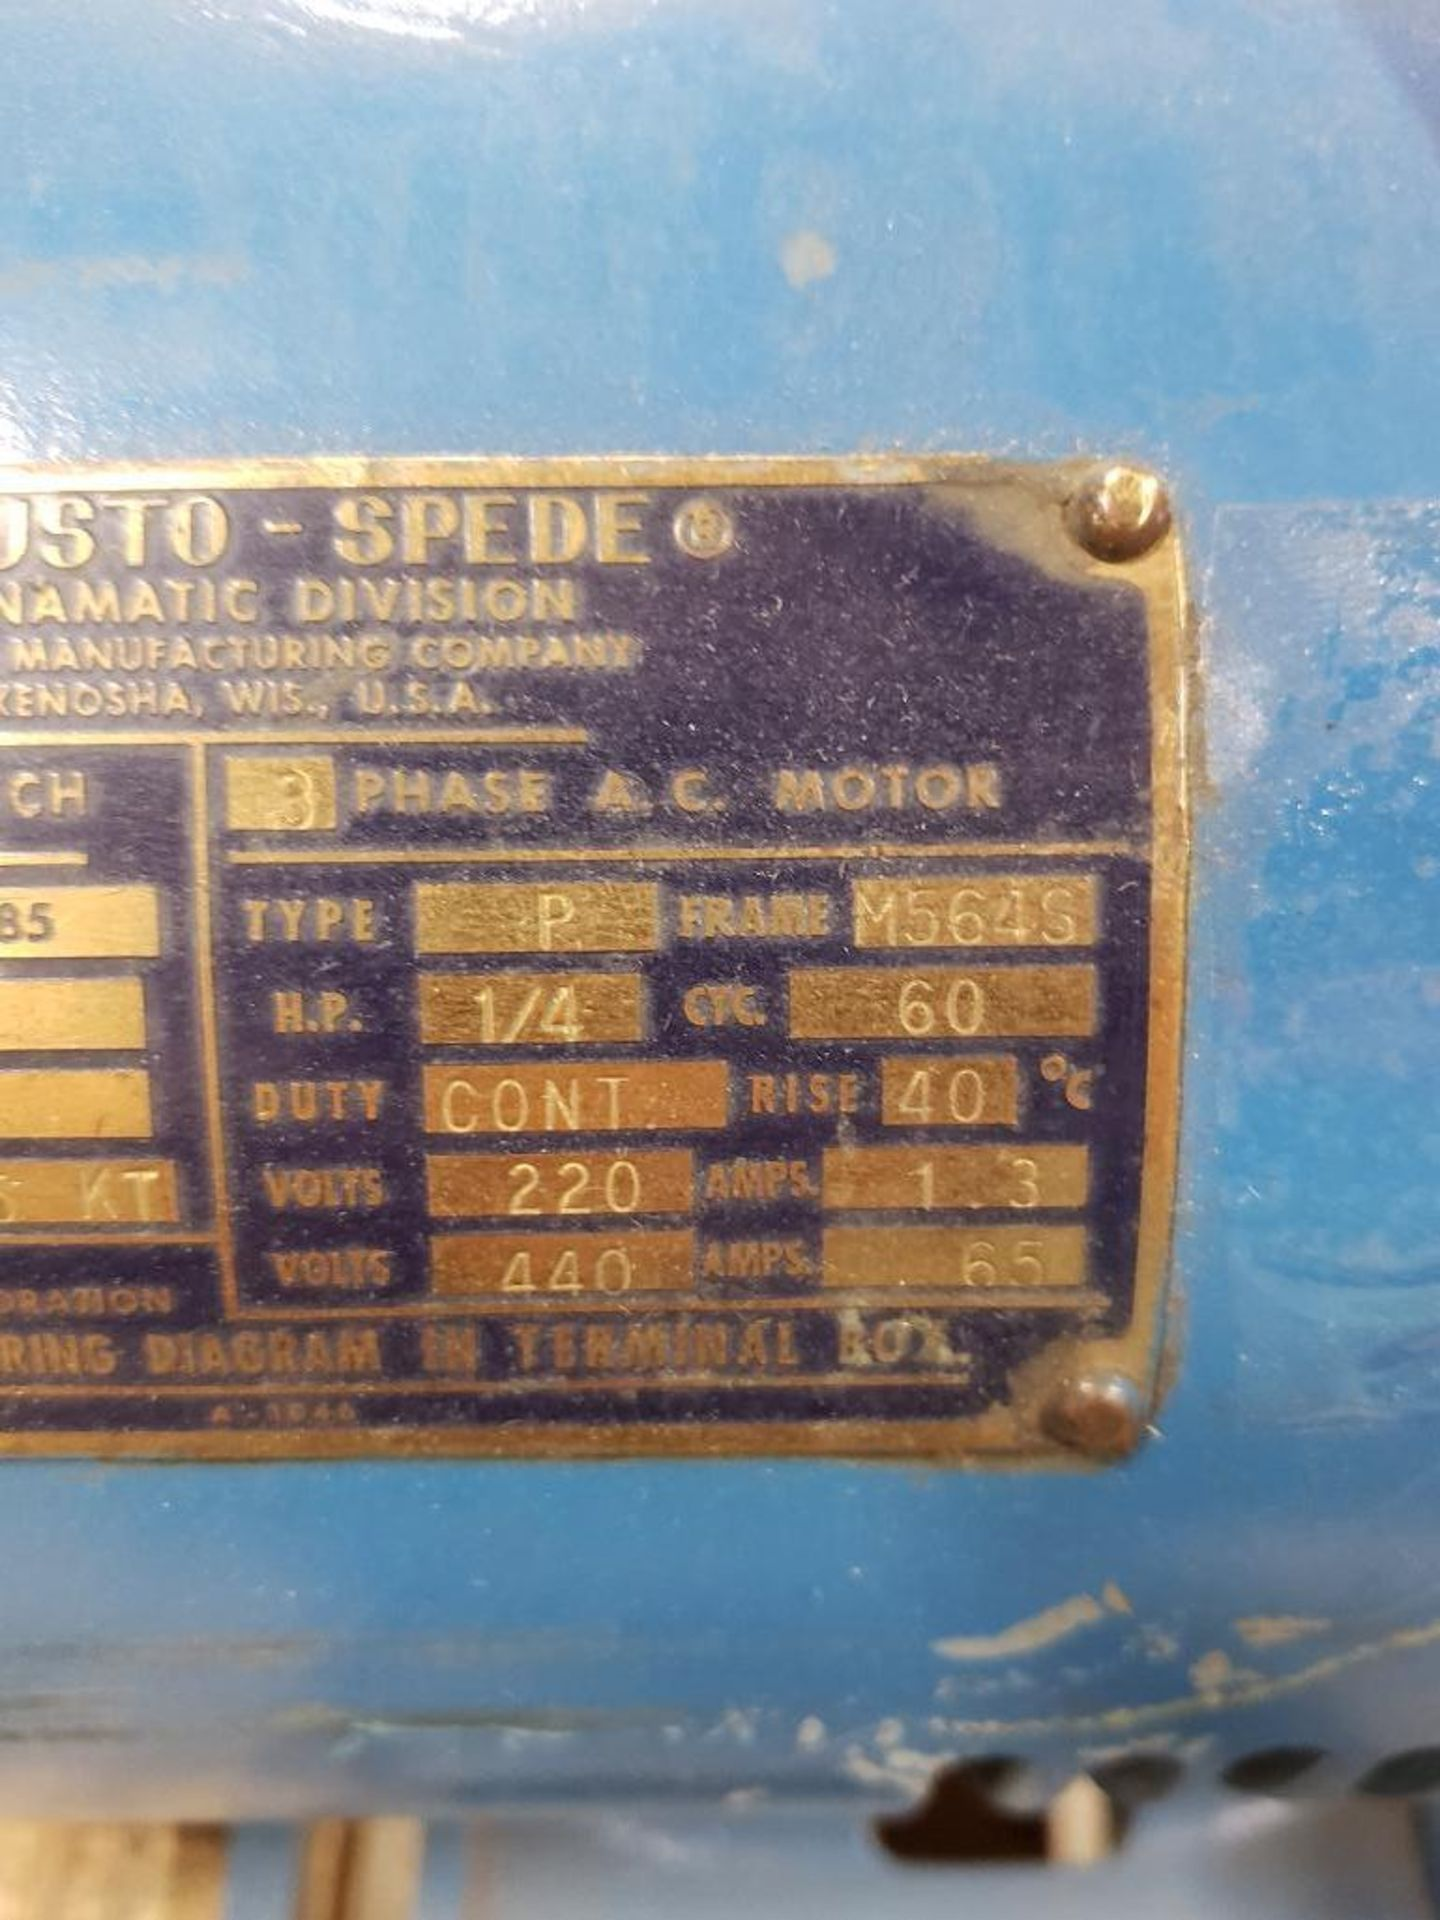 Lot 30 - Ajusto-speed dynamatic motor model 2543-195KT, 1/4hp 3 phase. 220/440v. Appears used with shelfwear.